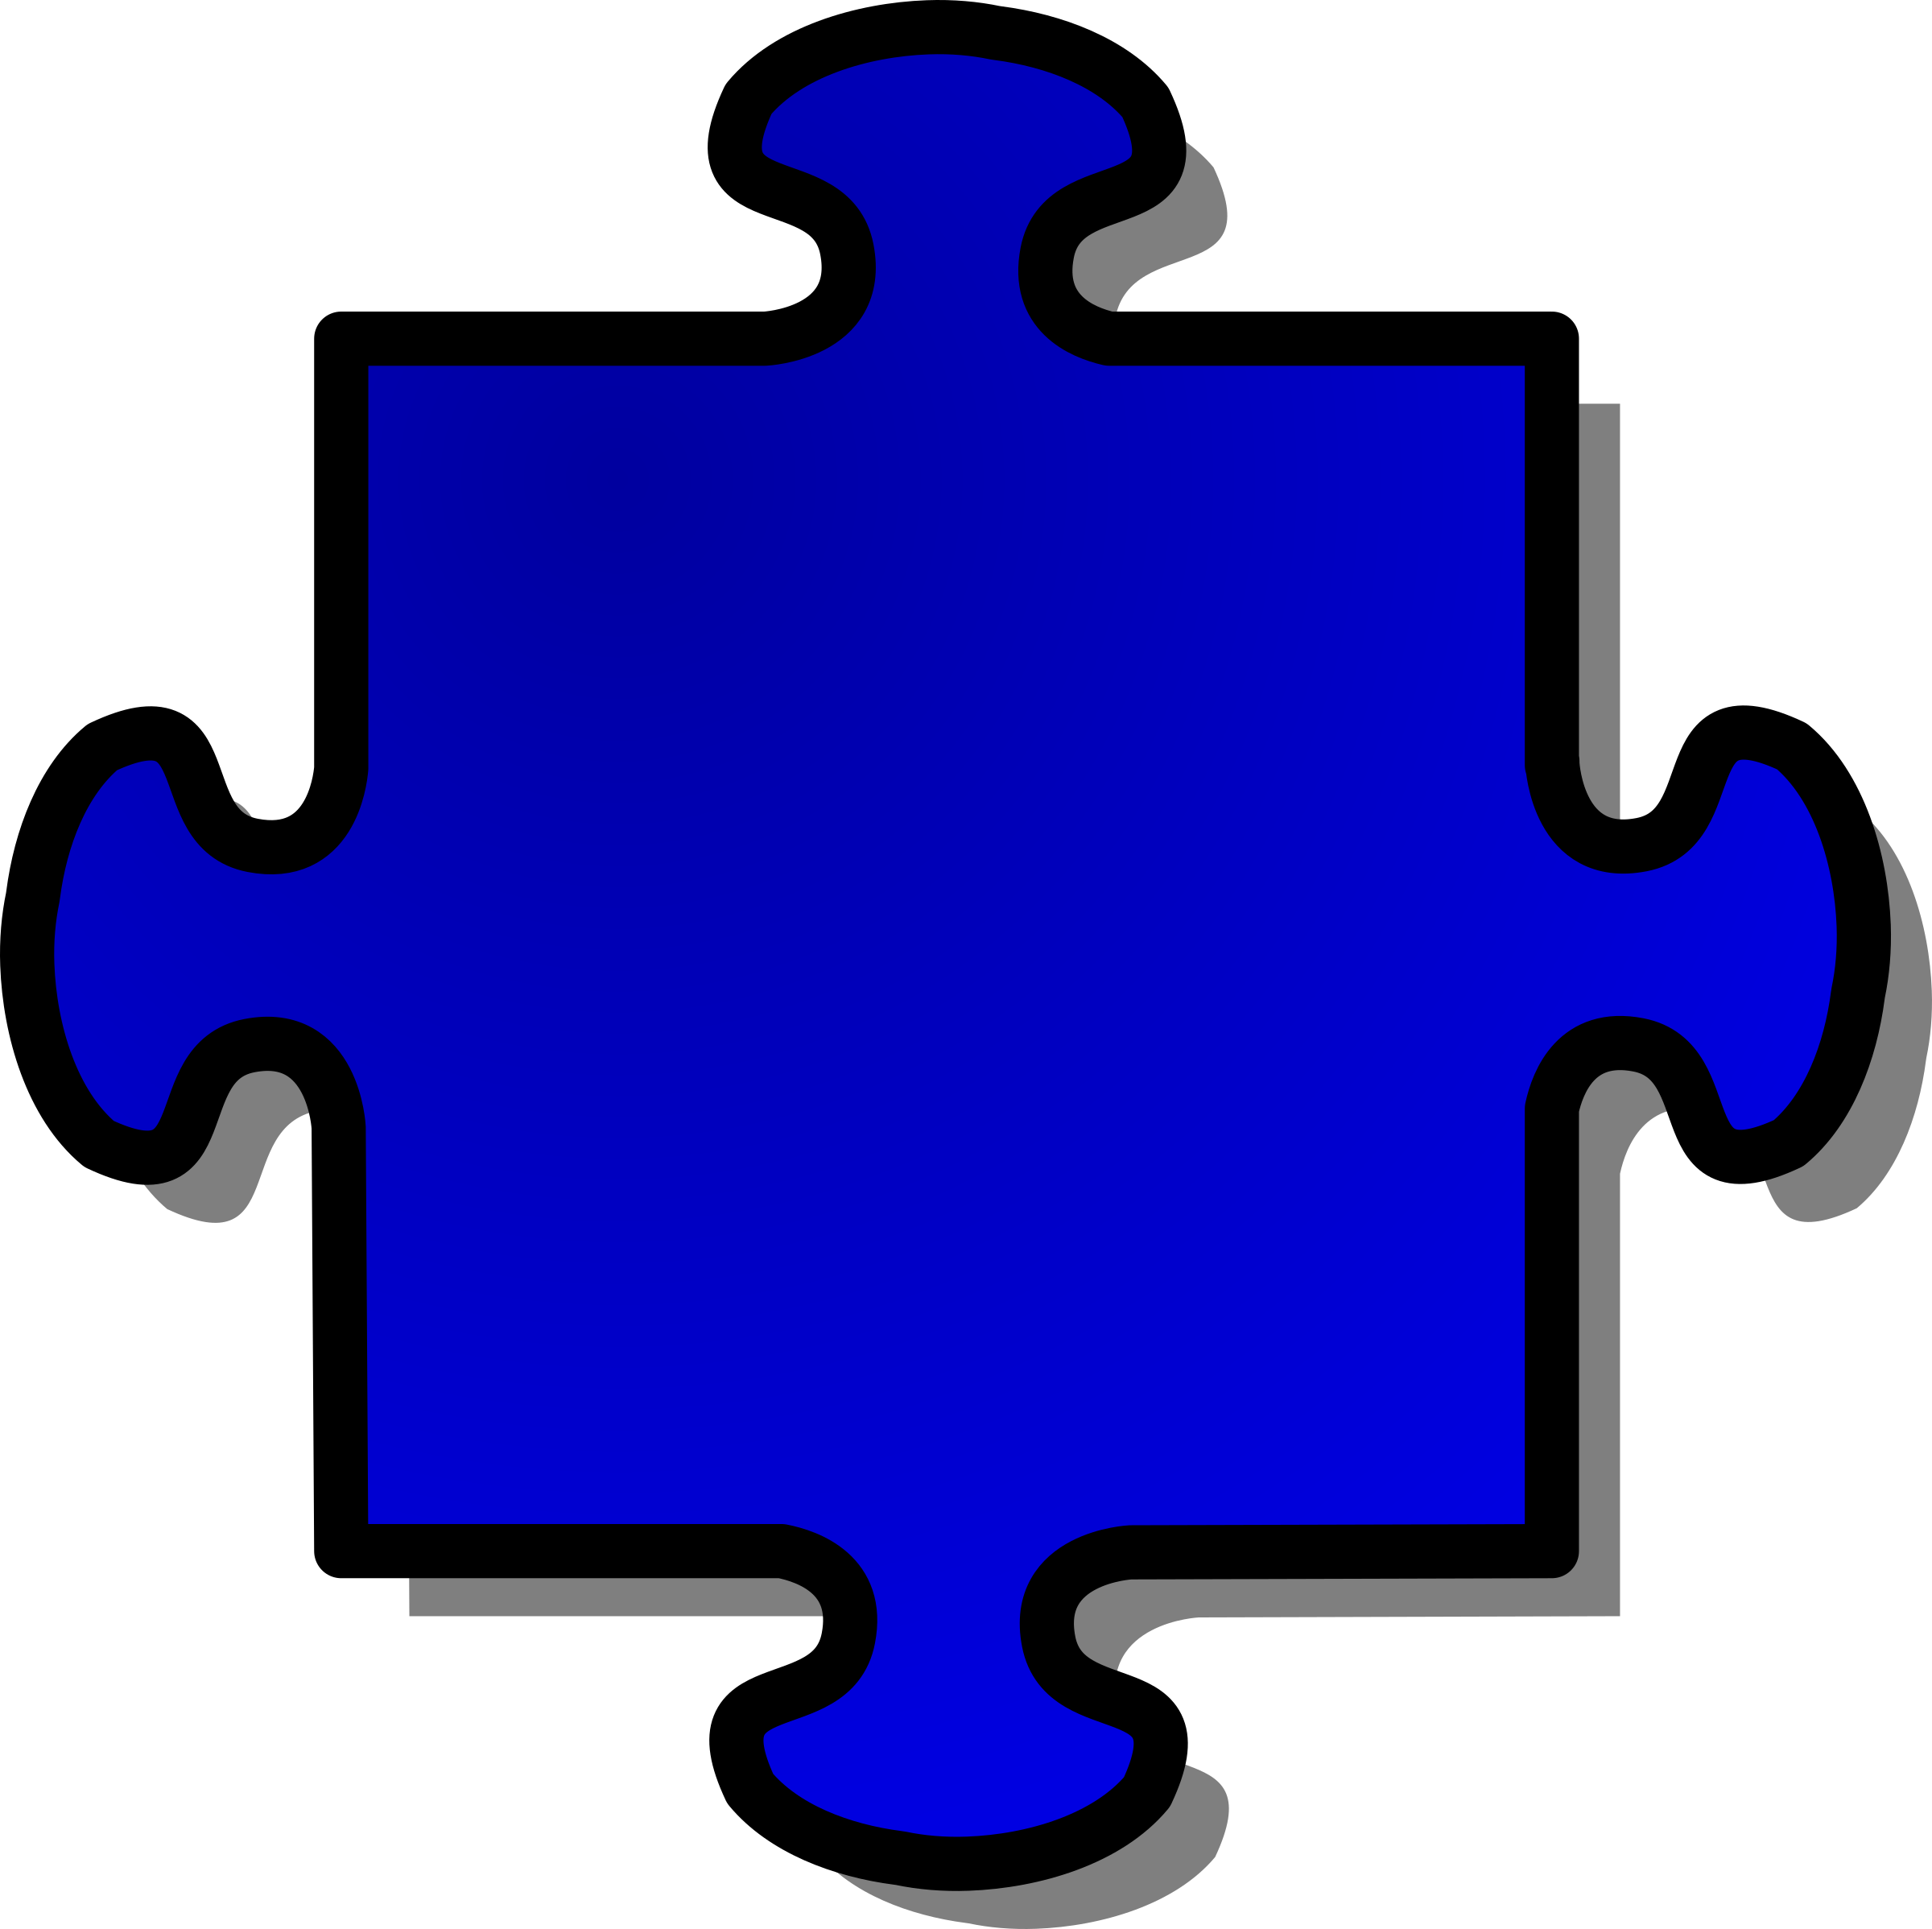 Blue Jigsaw piece 04 by nicubunu